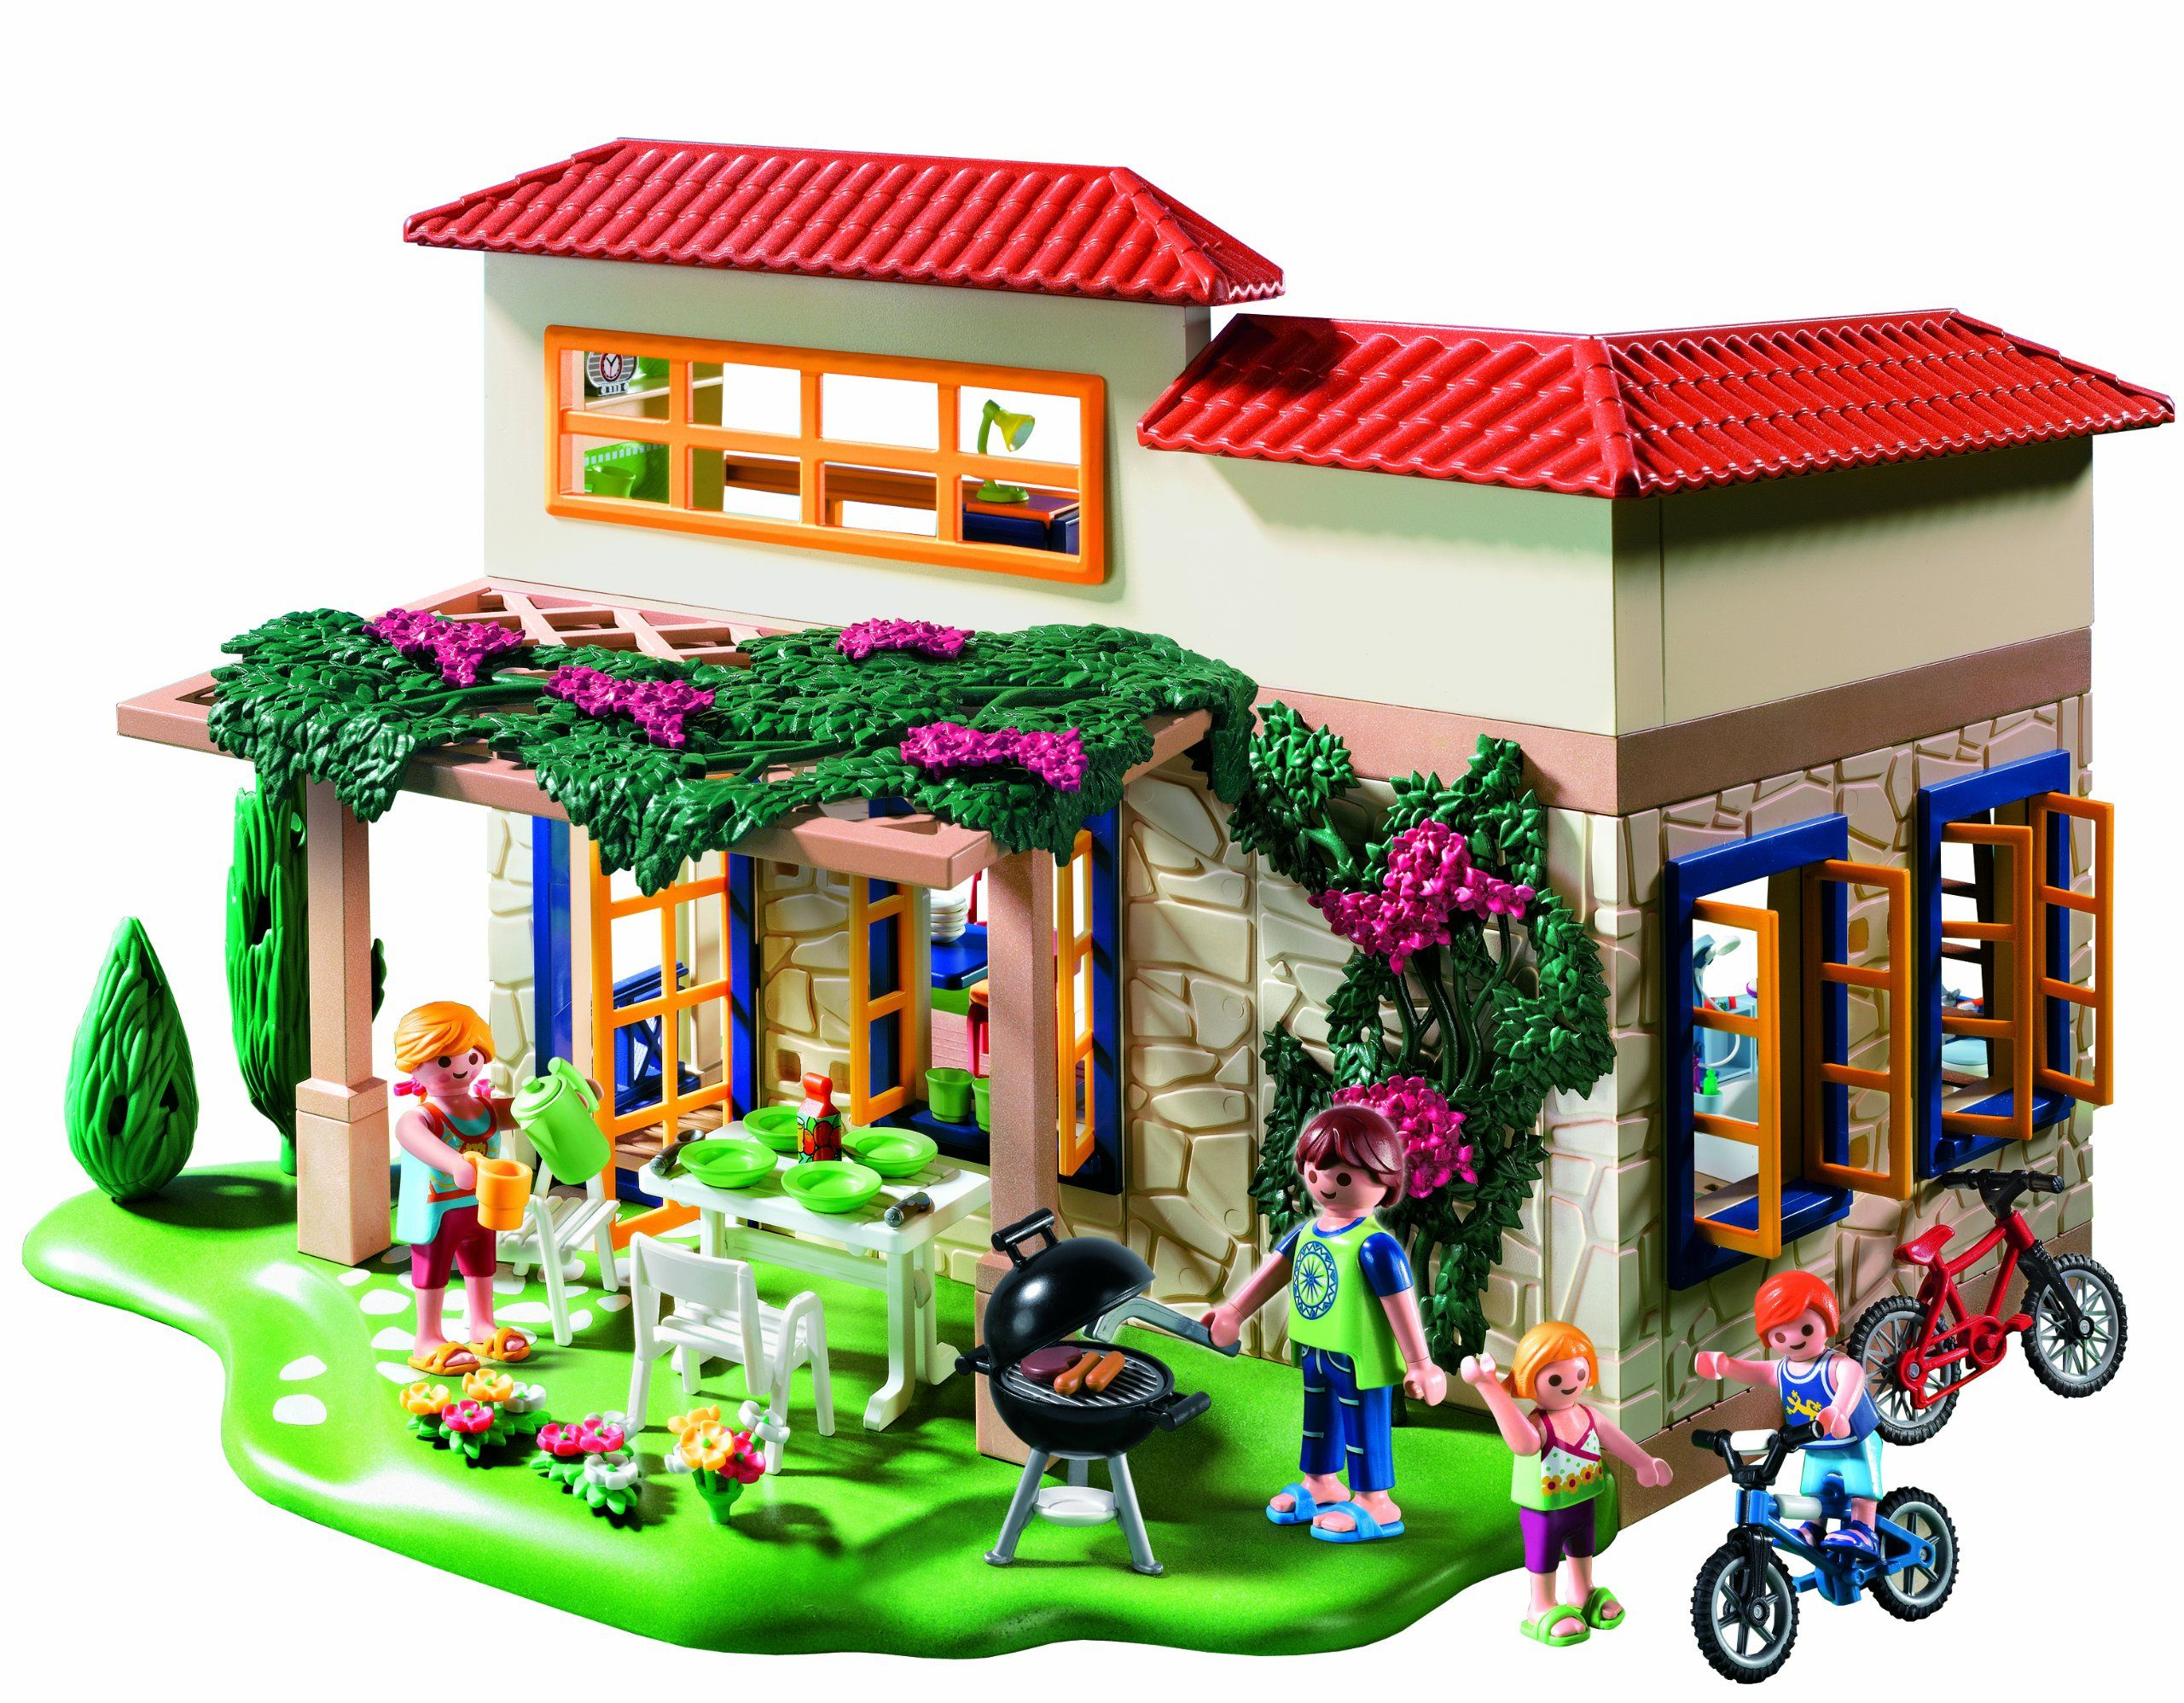 Playmobil summer house l pie holiday ideas home